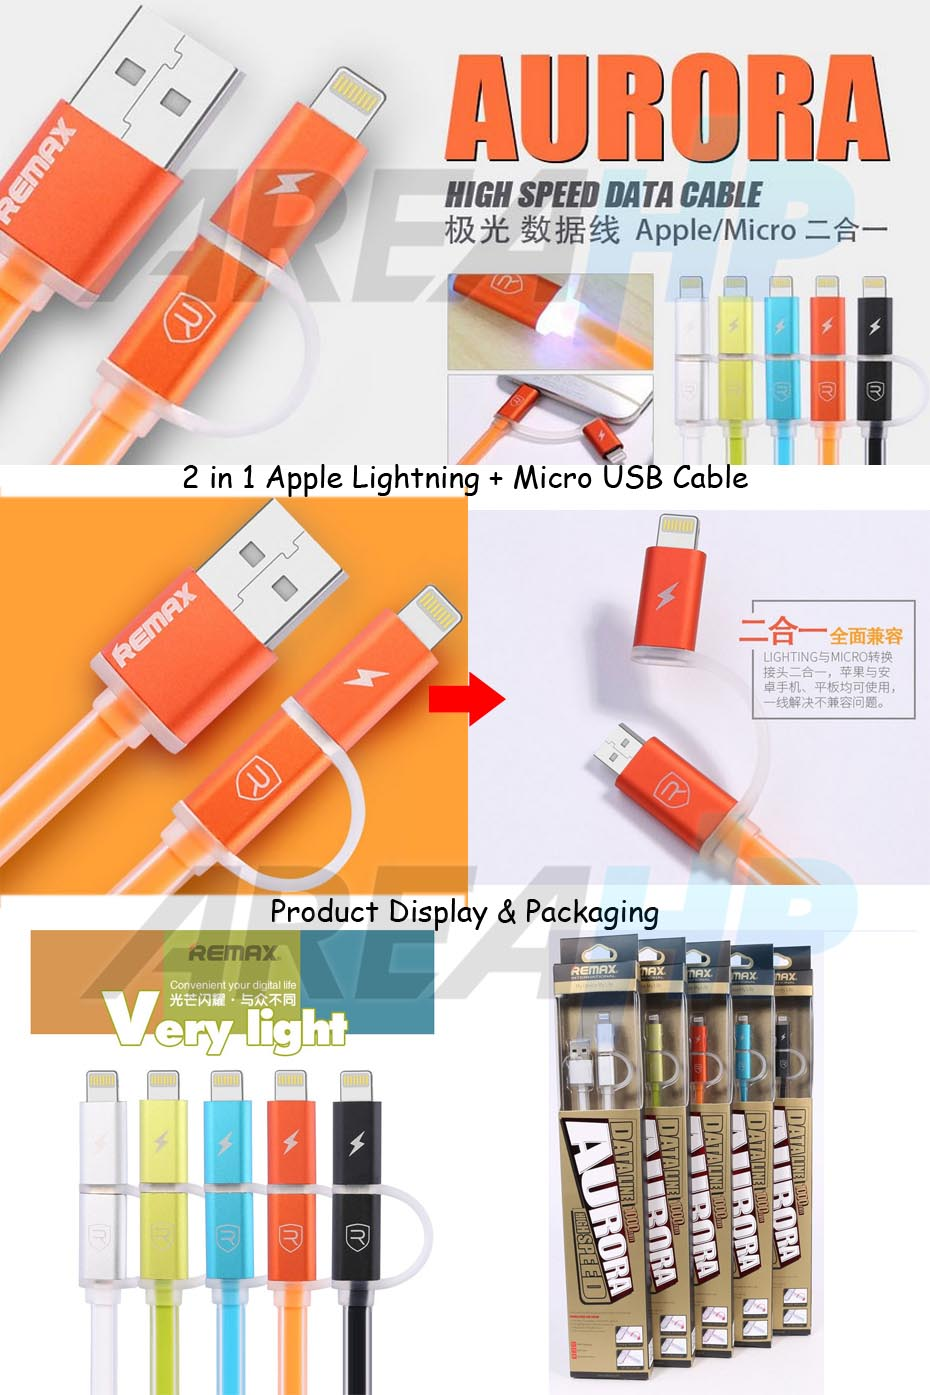 Remax Aurora 2in1 Apple Lightning, Micro USB Cable 1M RC-020T Overview